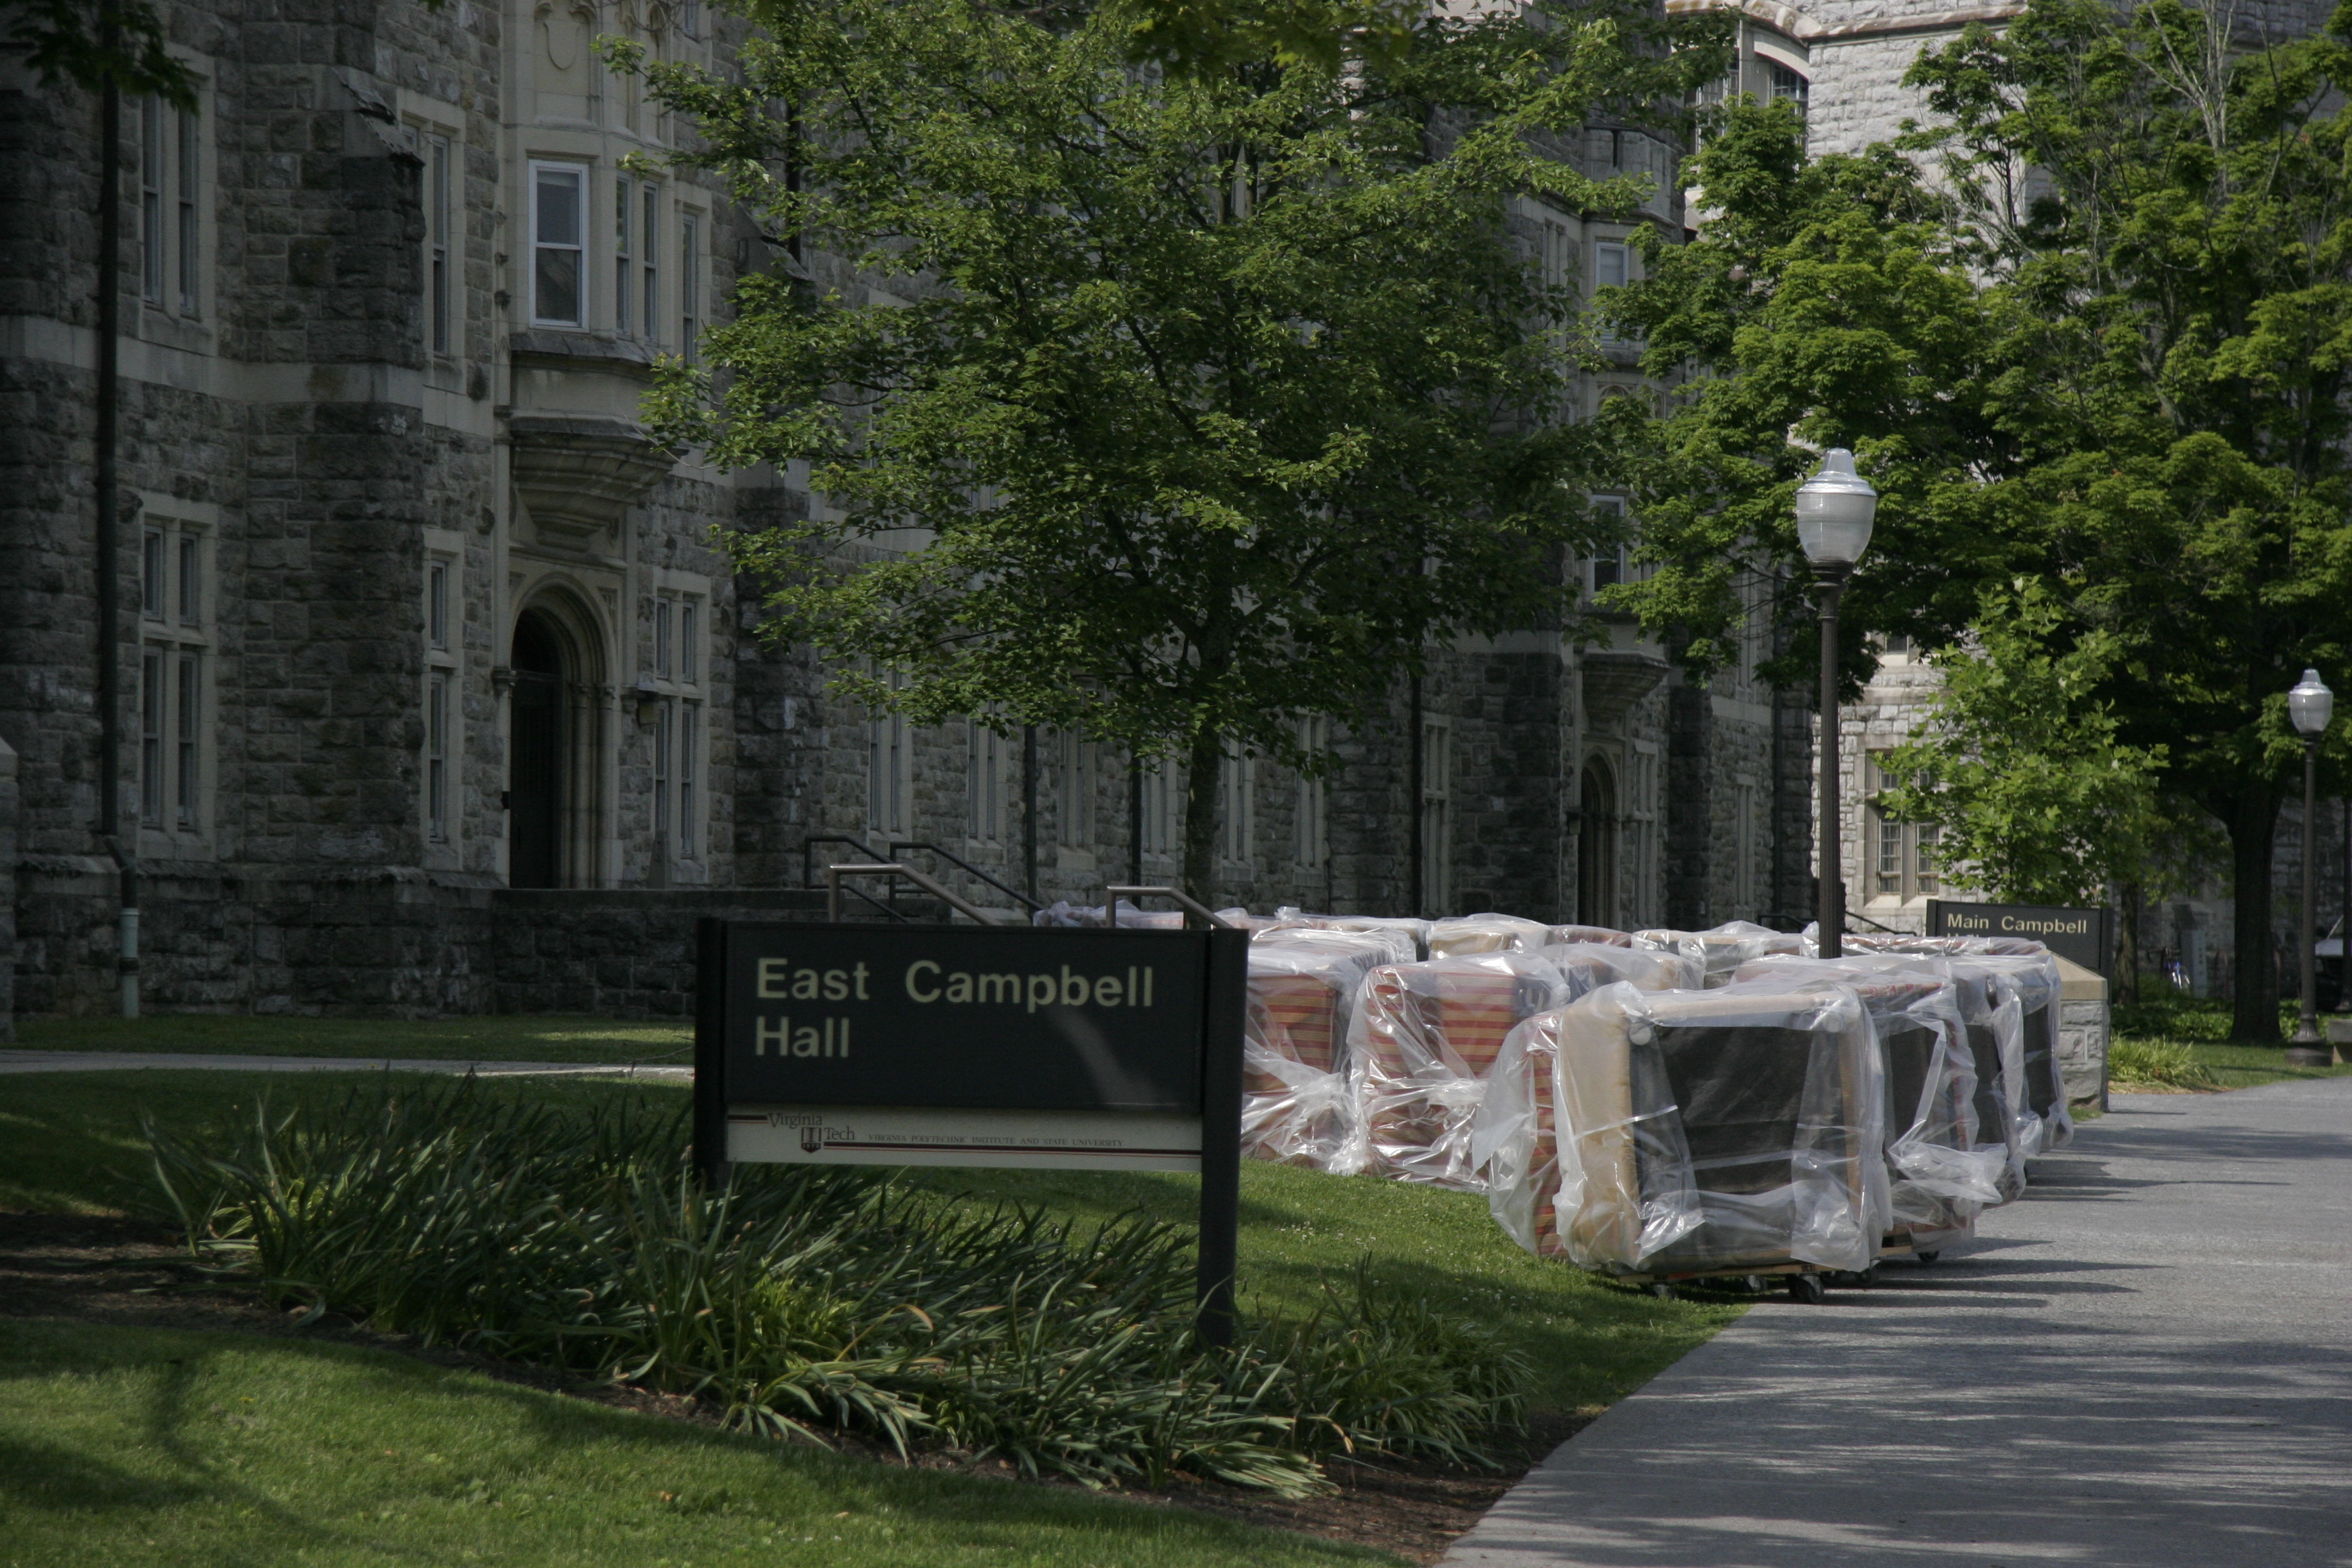 New modular lounge furniture awaits installation in East Campbell Hall.